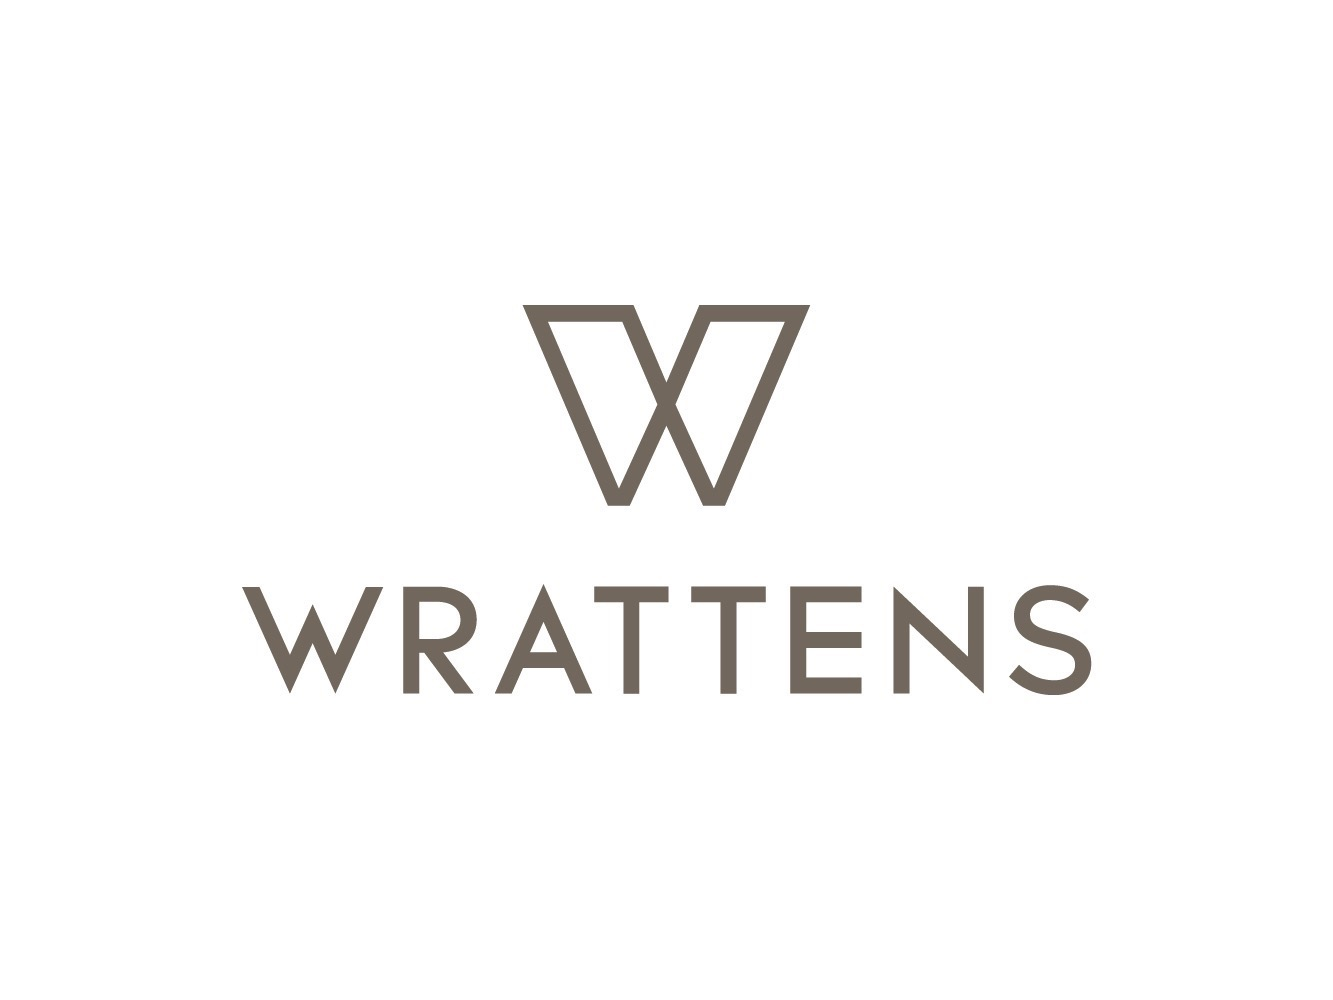 Wrattens, Interior Design